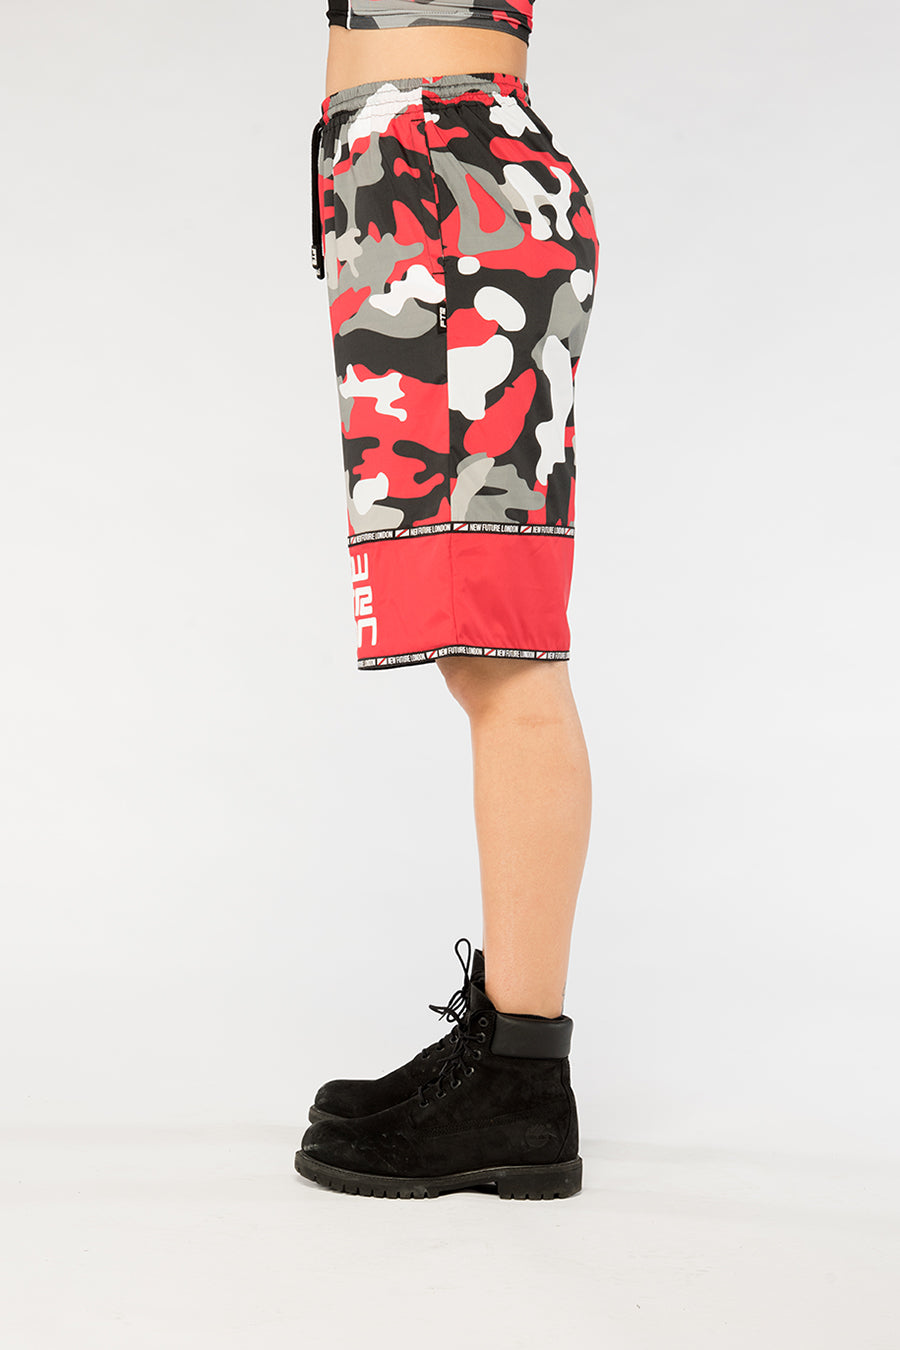 new_future_london_racer_shorts_camo_red_2-1.jpg